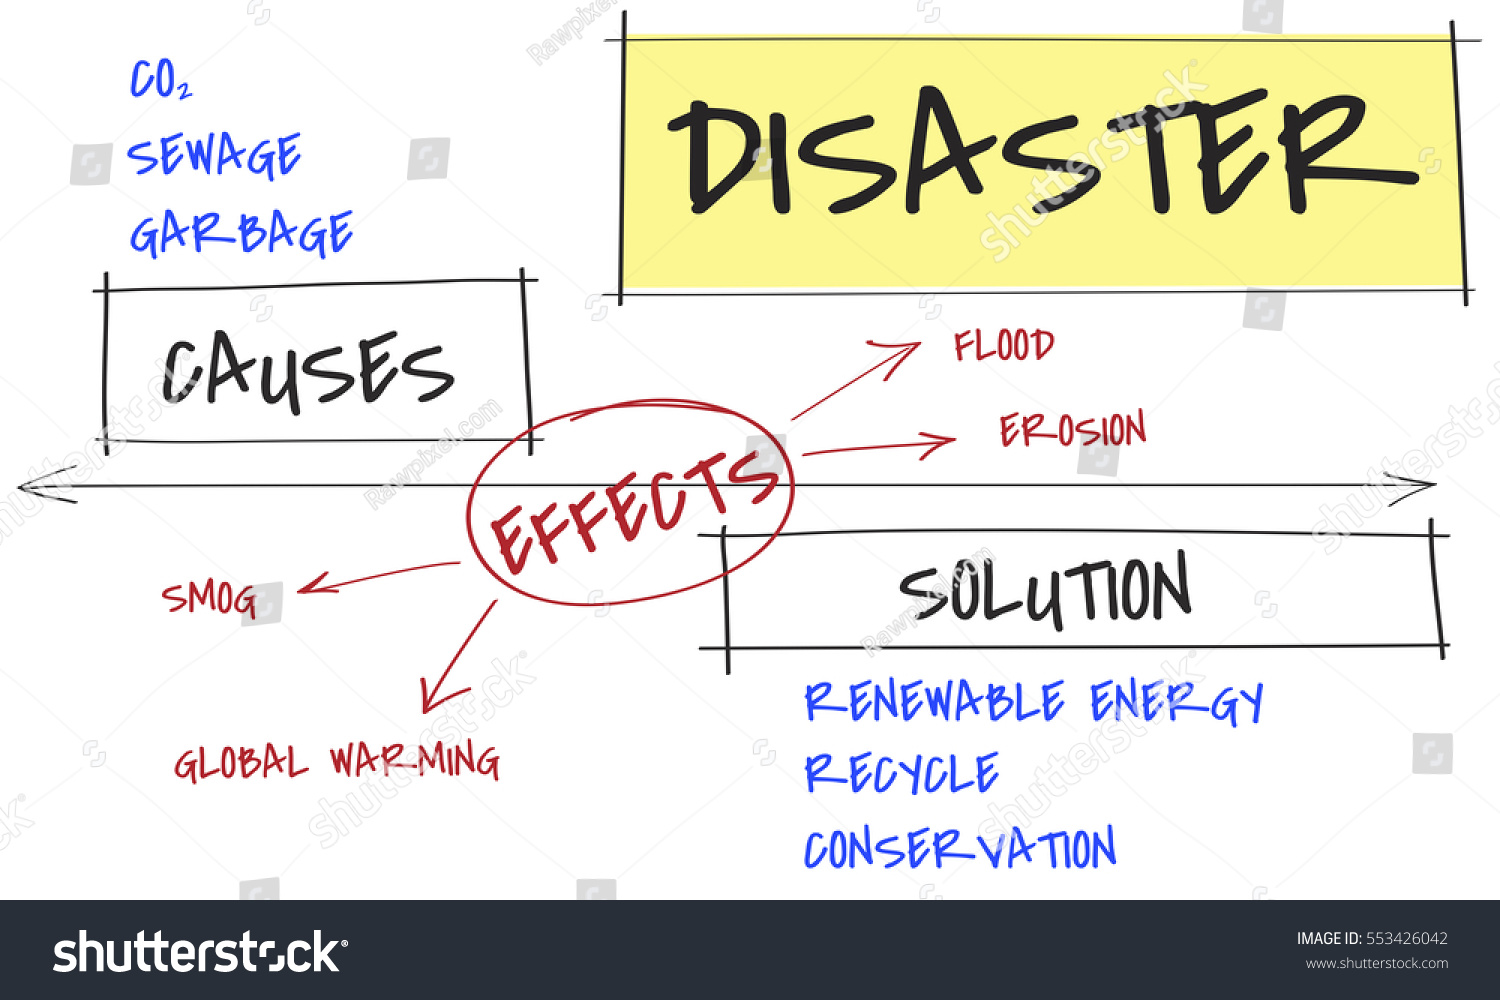 Climate pollution global warming disaster stock illustration climate pollution global warming disaster ccuart Choice Image